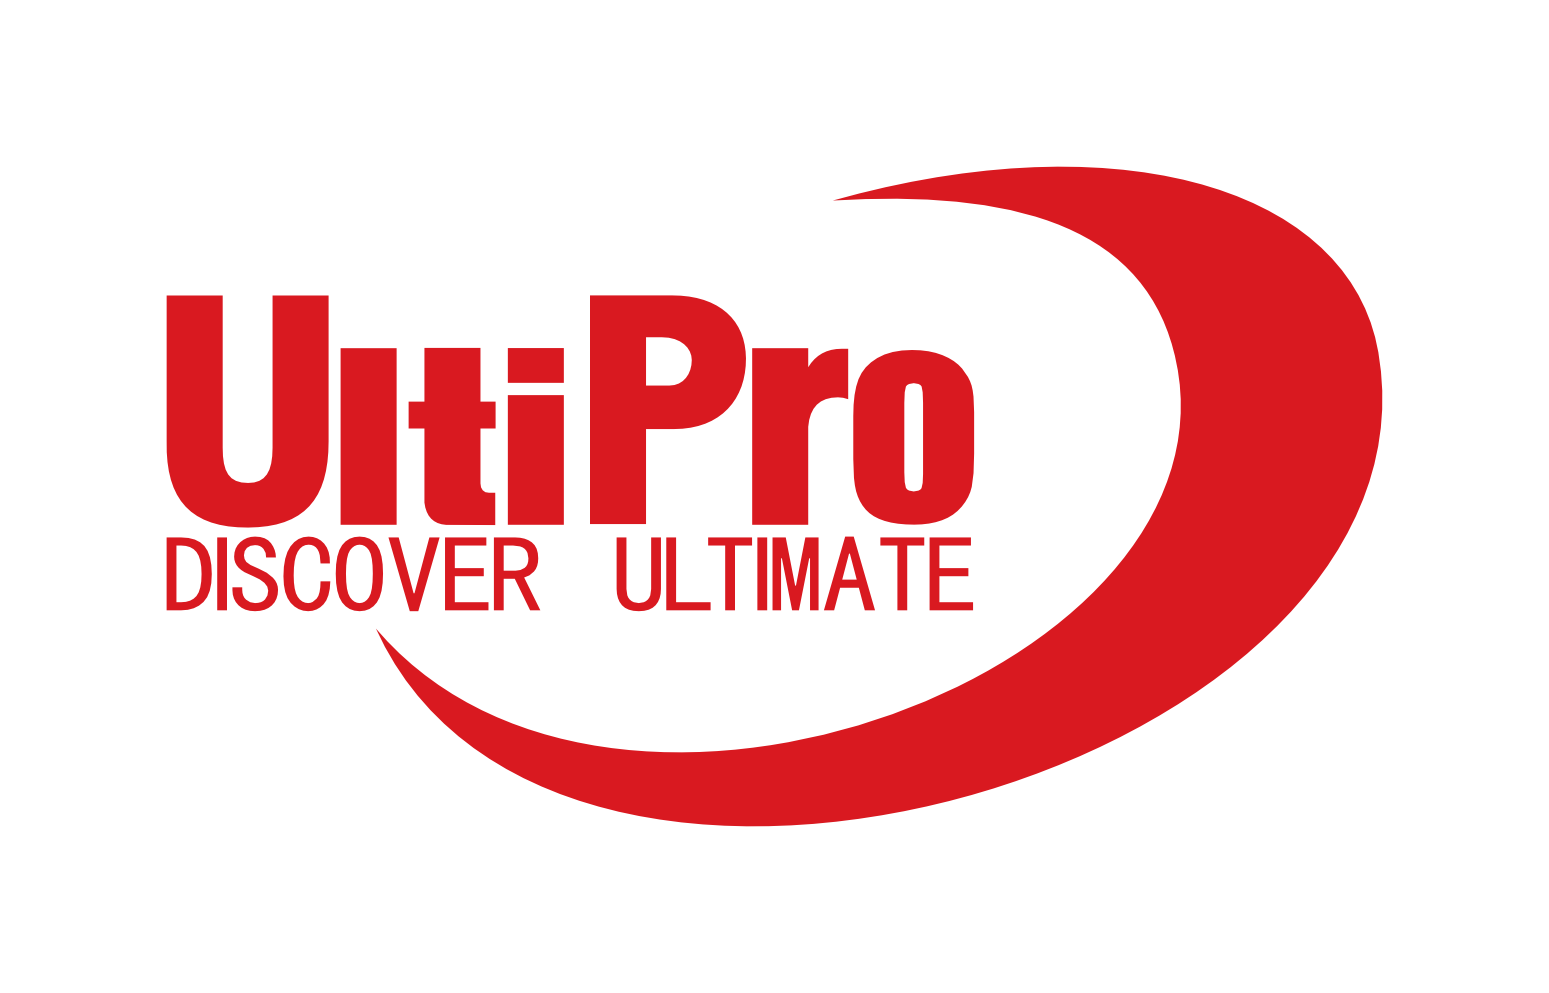 UltiPro Ultimate